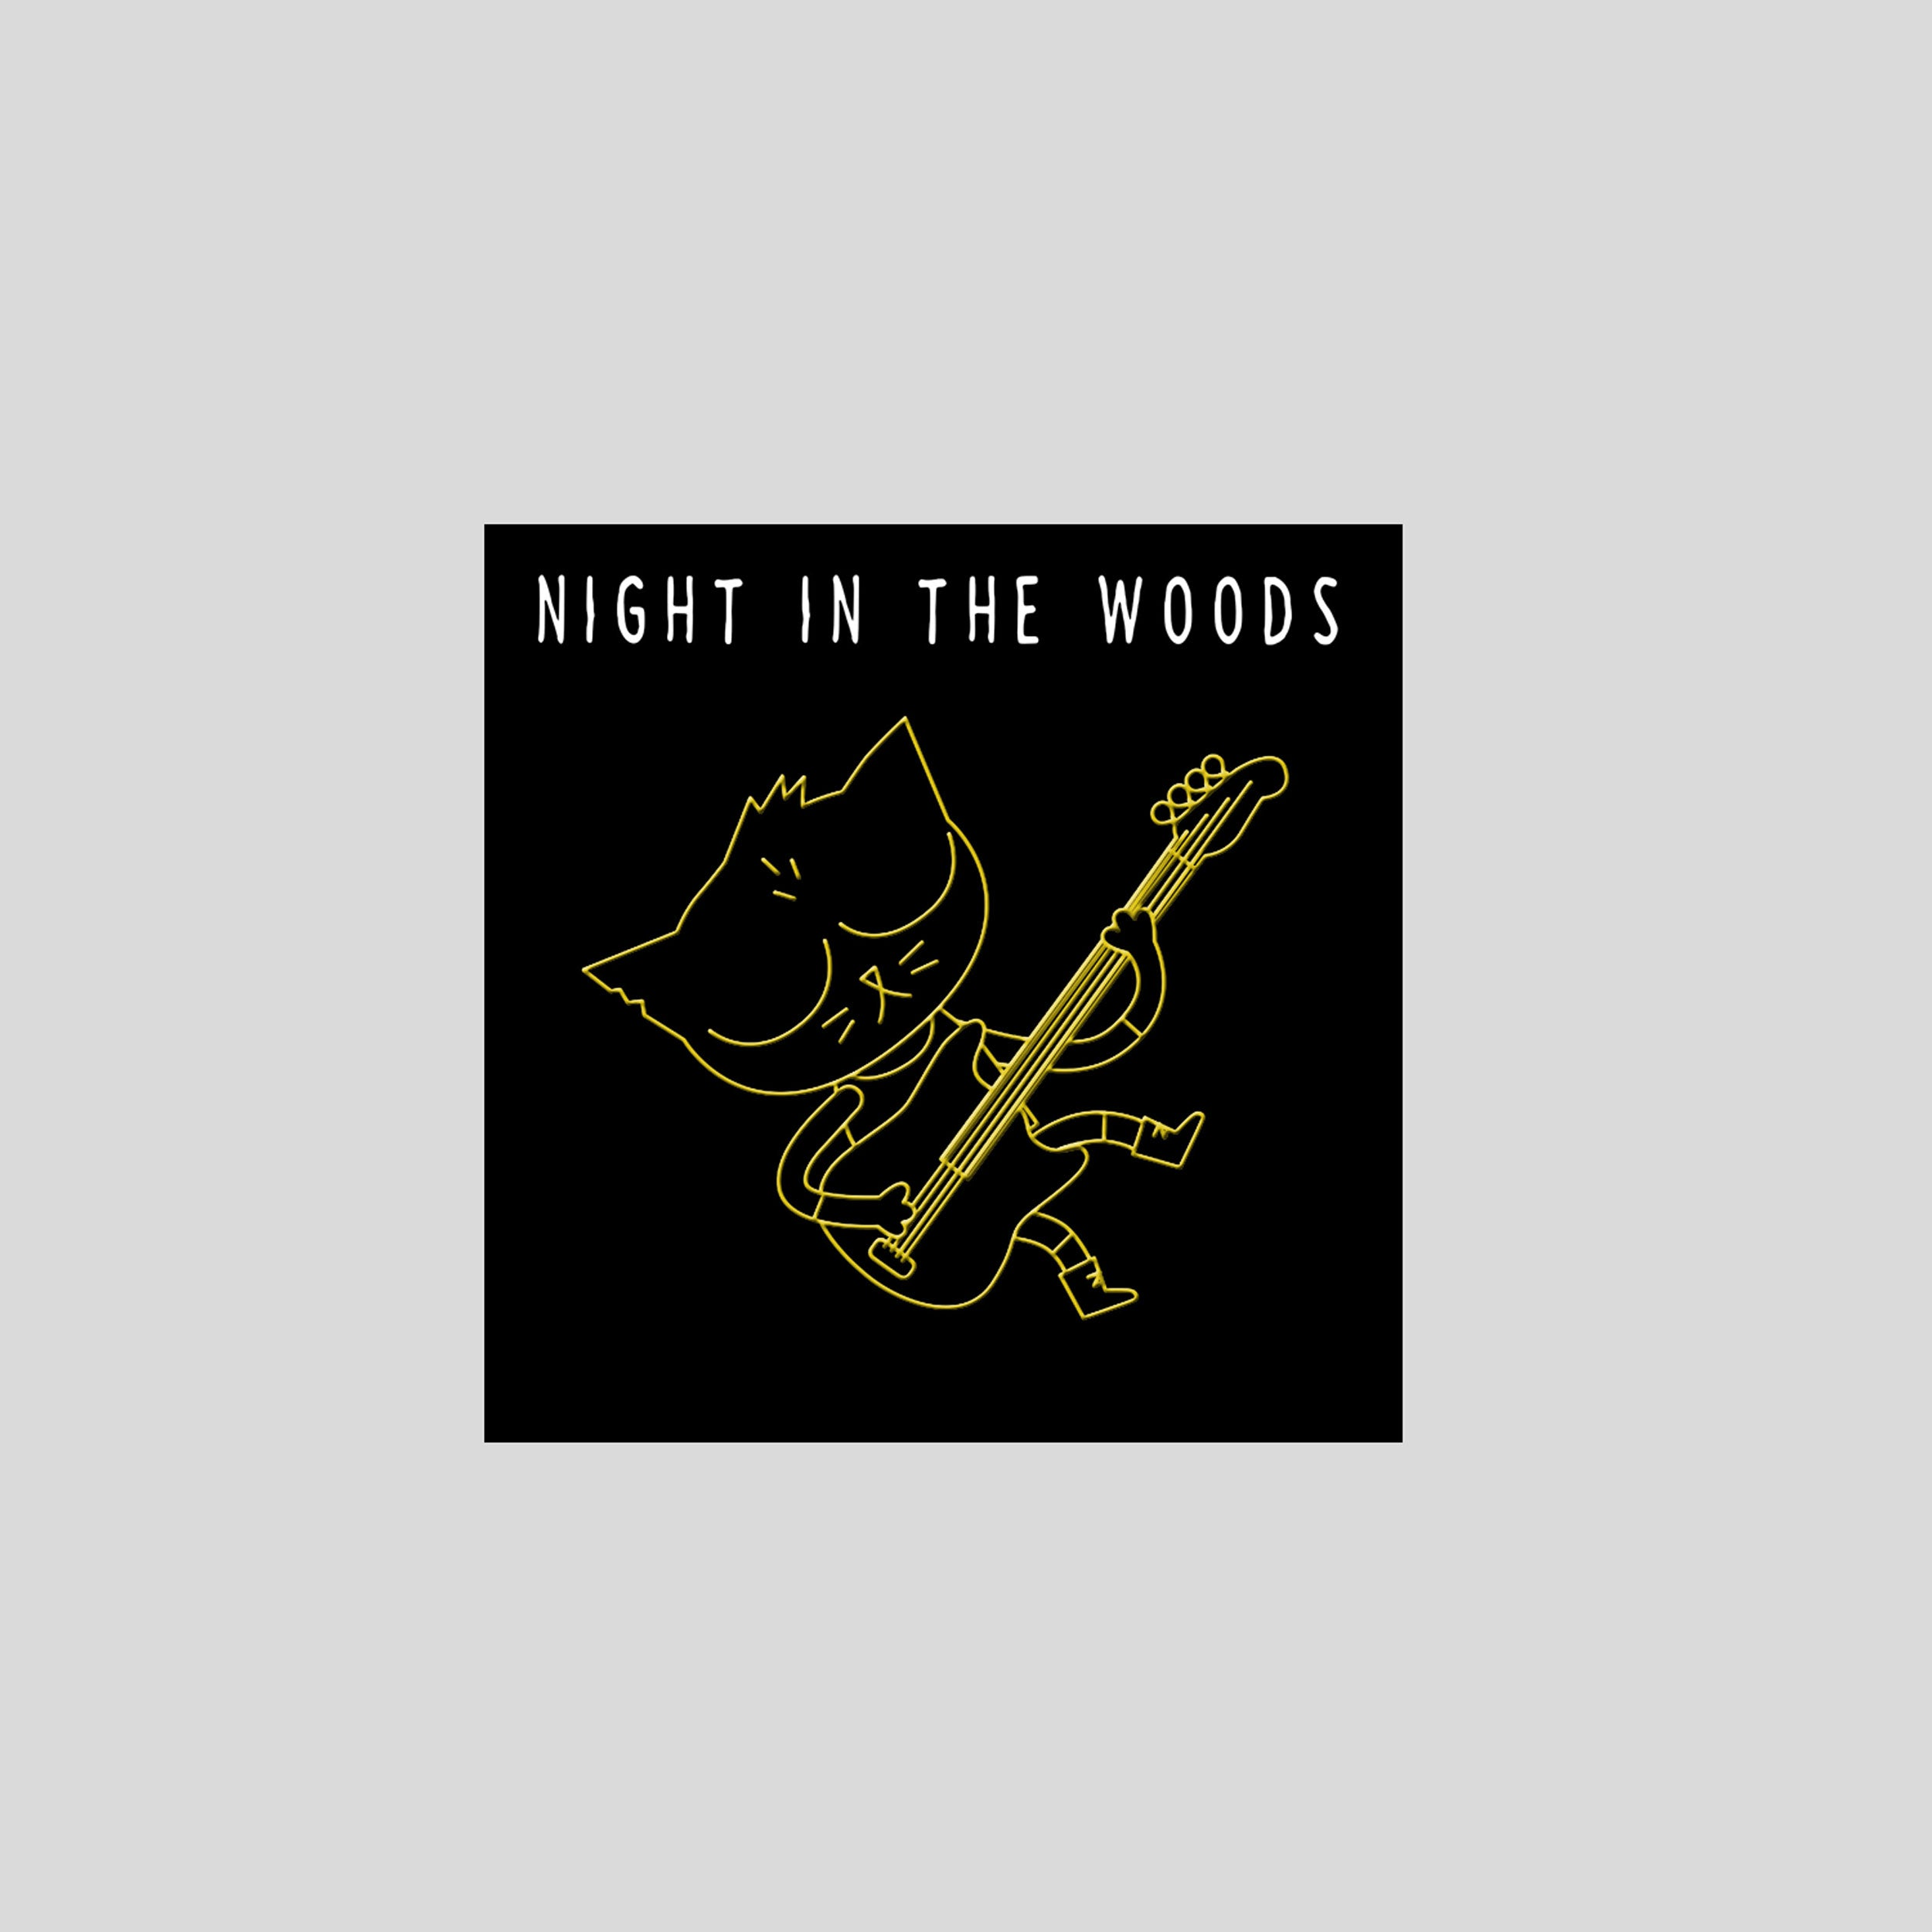 NIGHT IN THE WOODS (DELUXE 2xLP & ENAMEL PIN)